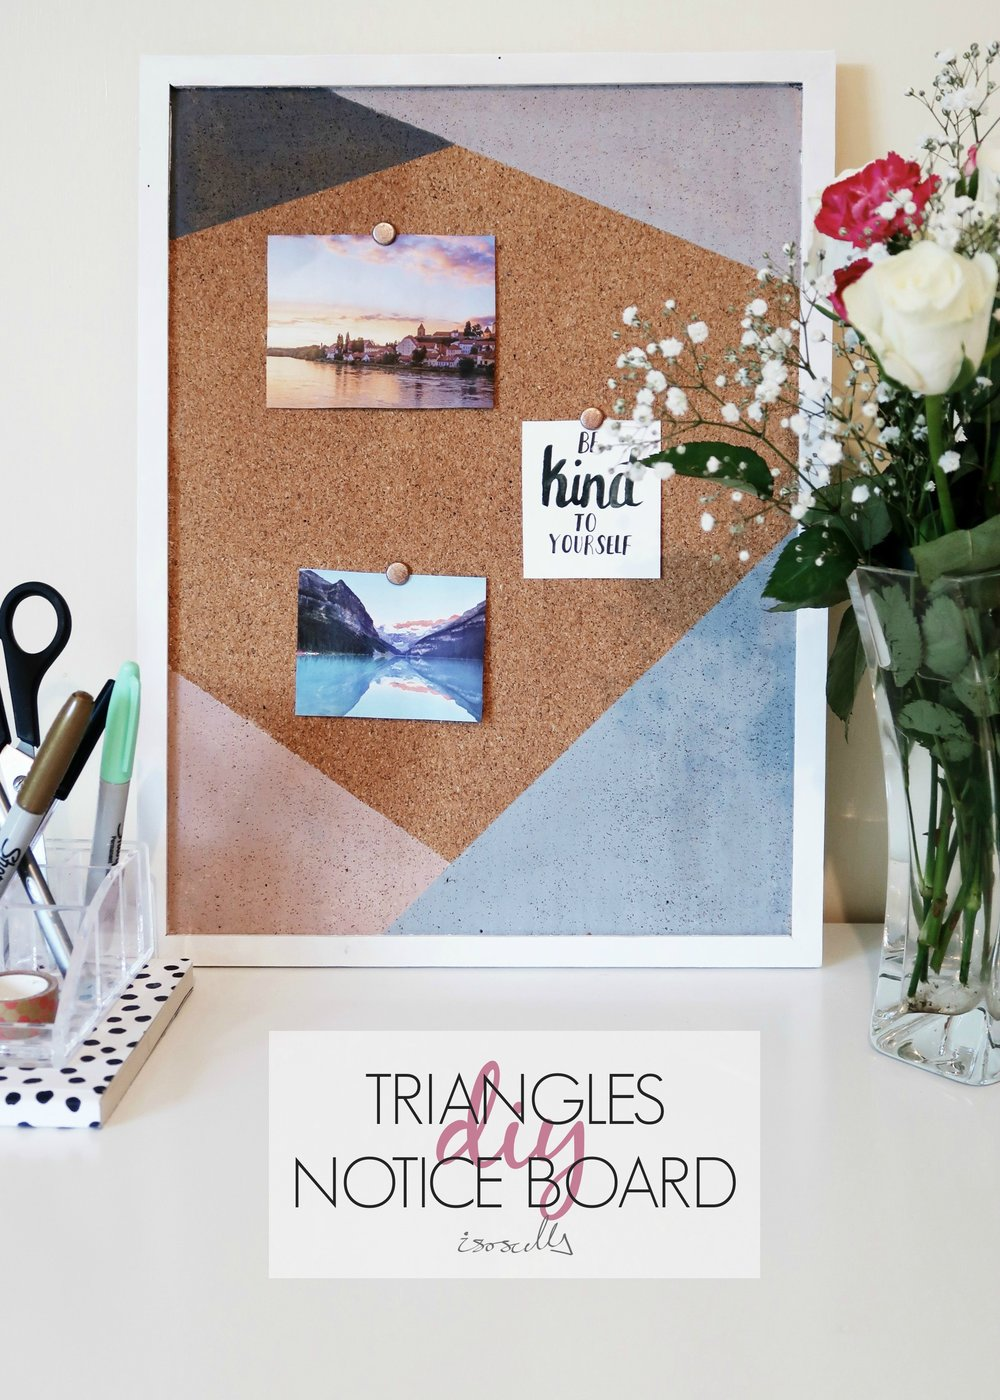 DIY Triangles Noticeboard by Isoscella